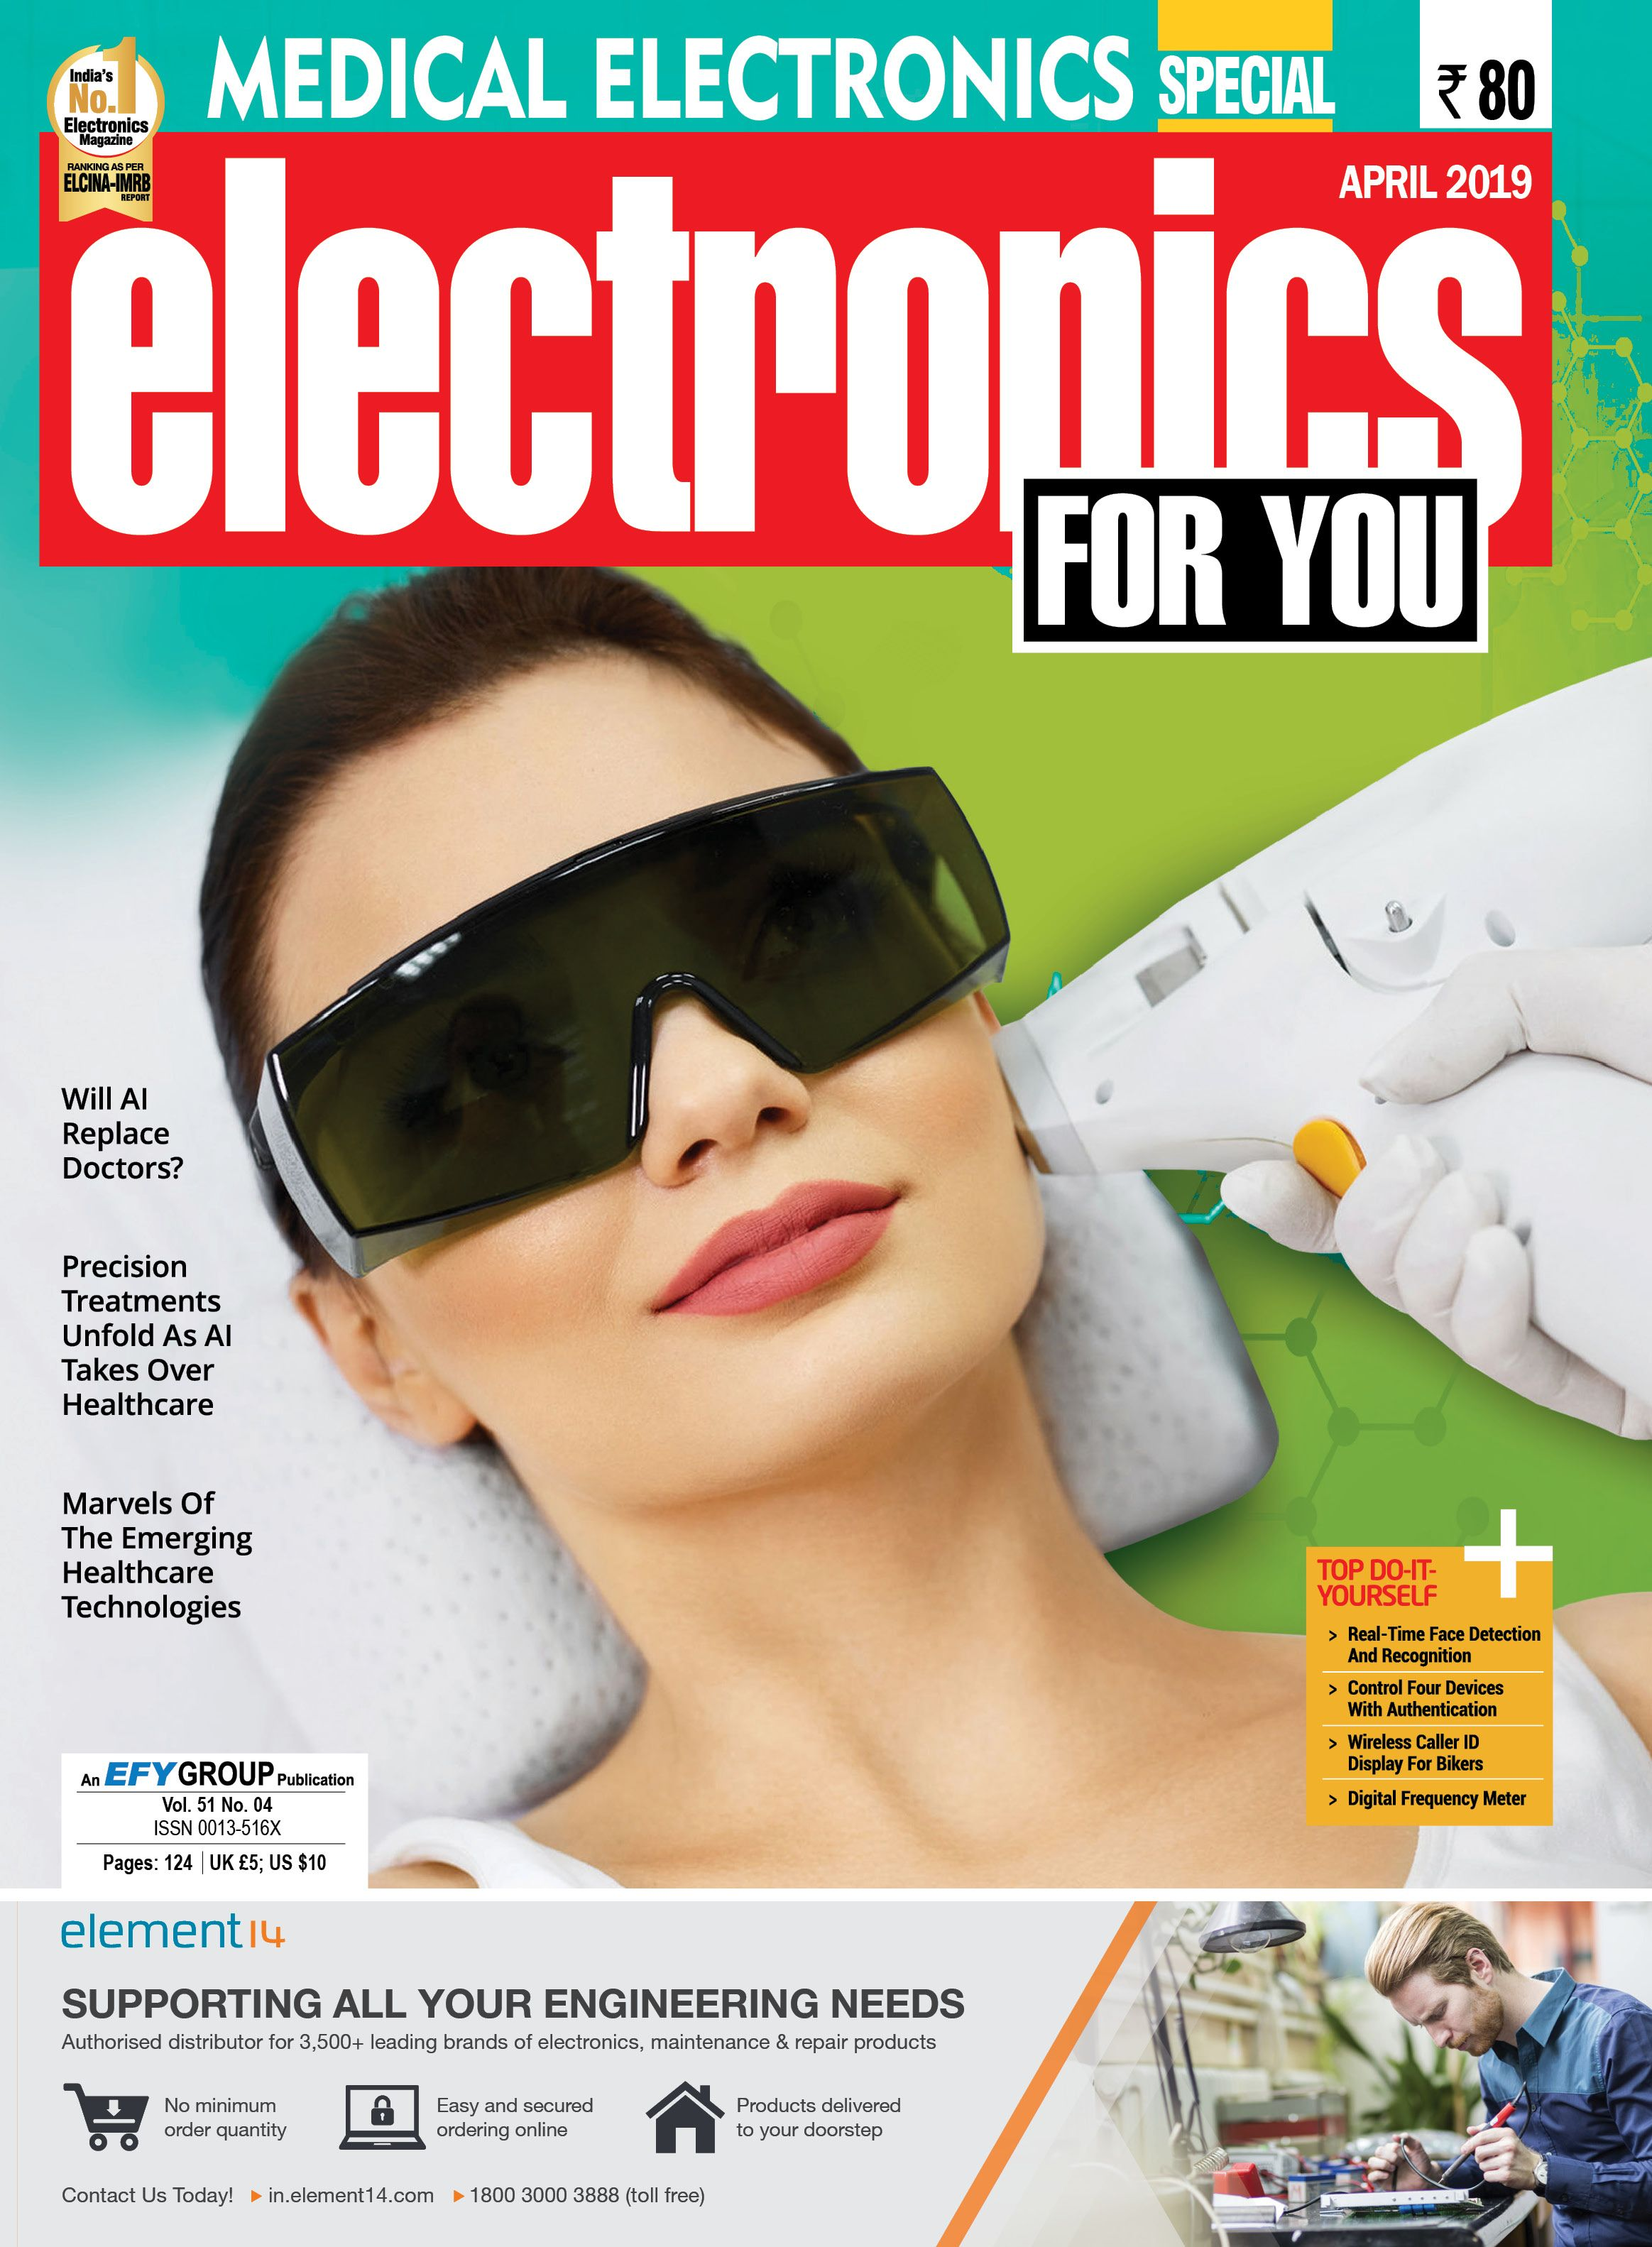 Electronics For You April 2019 Issue on Medical Electronics